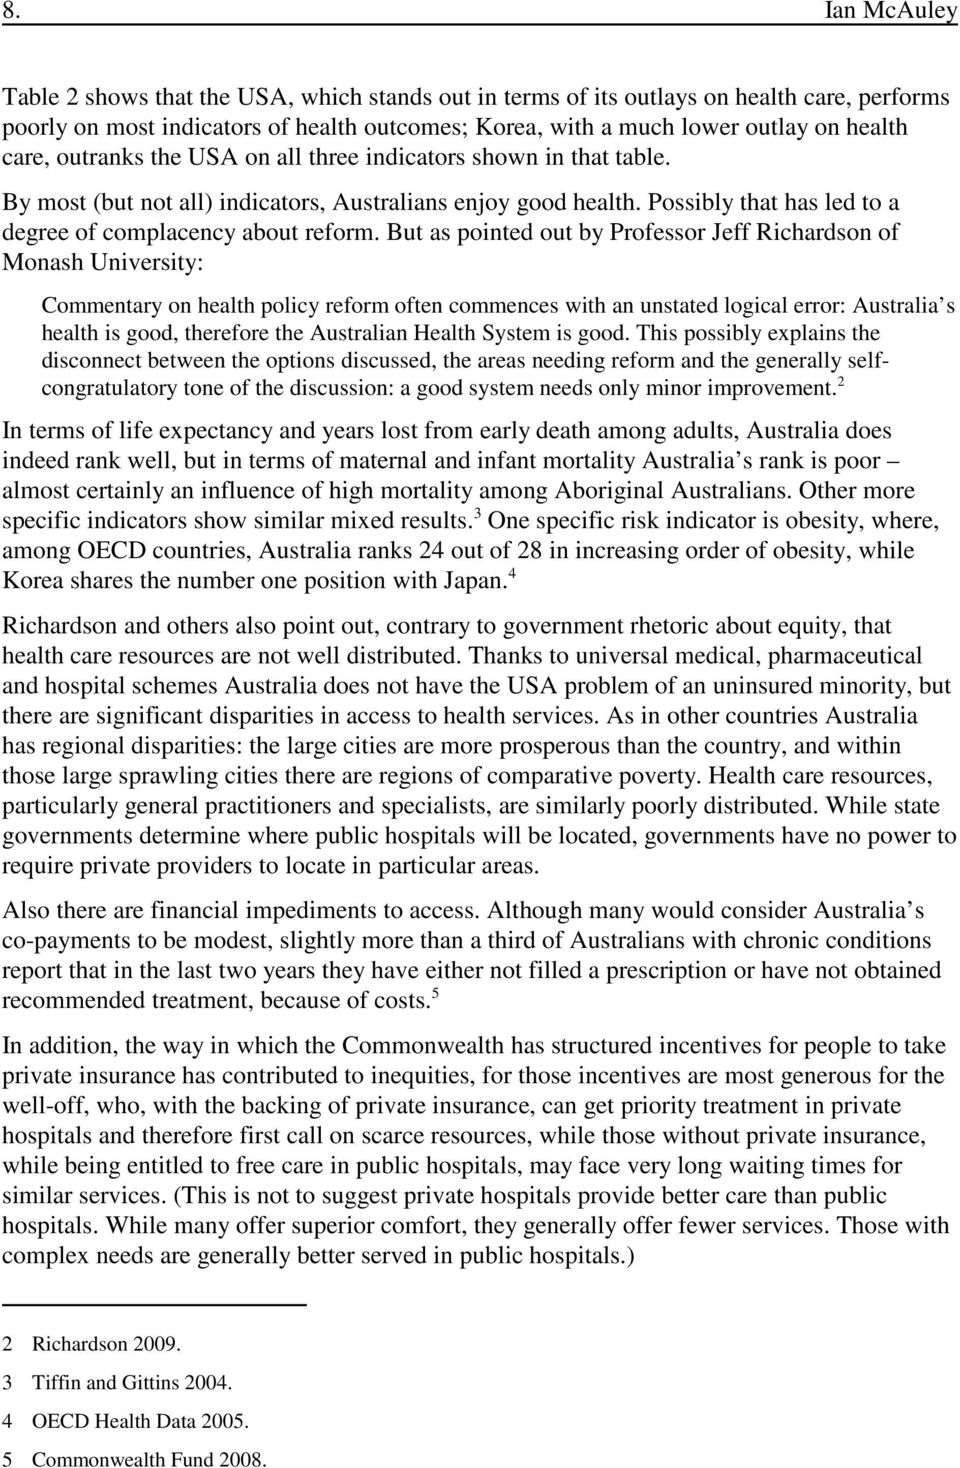 But as pointed out by Professor Jeff Richardson of Monash University: Commentary on health policy reform often commences with an unstated logical error: Australia s health is good, therefore the